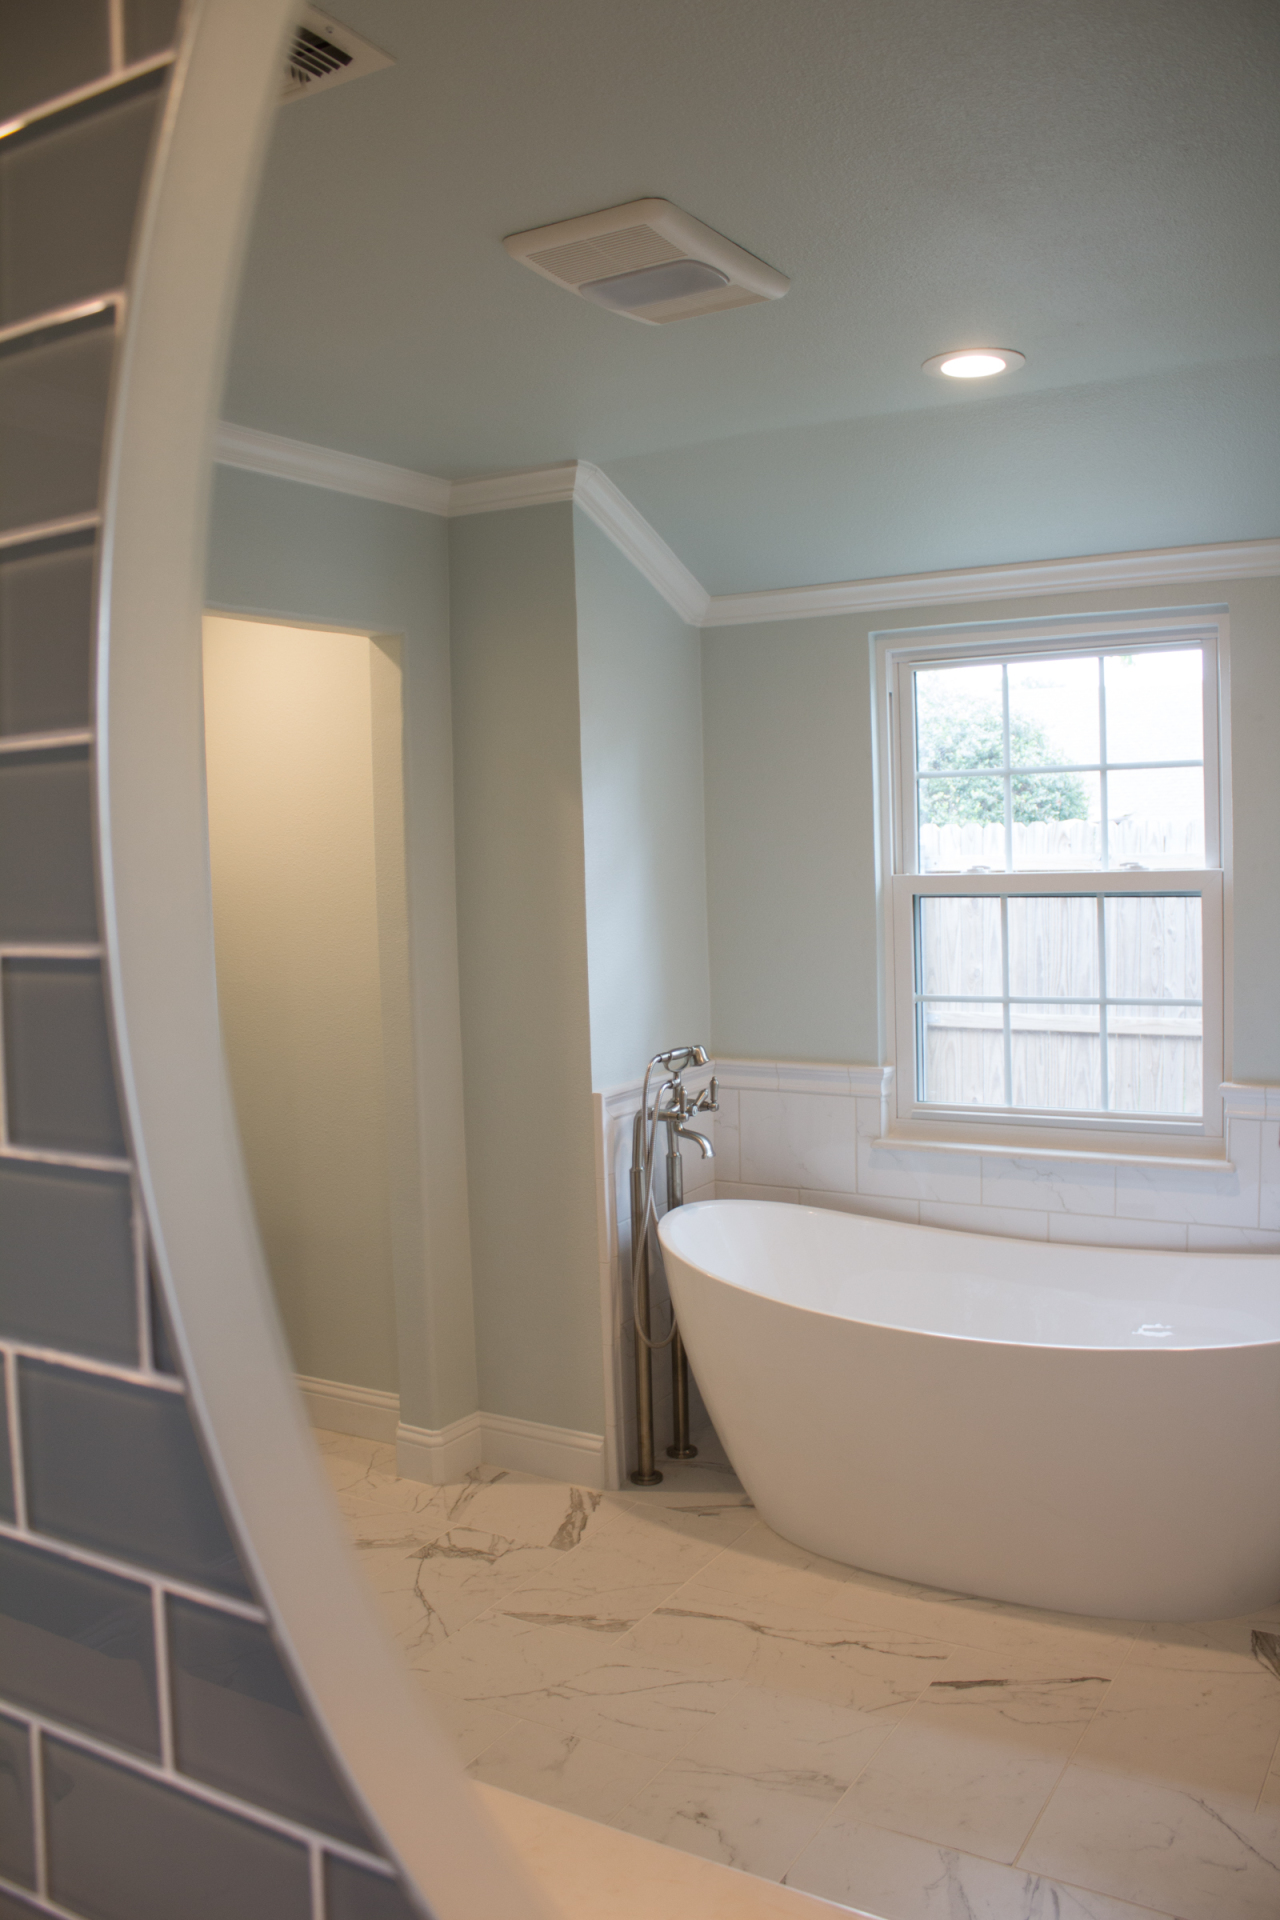 jarrell-signature-white-bathroom-remodel-7